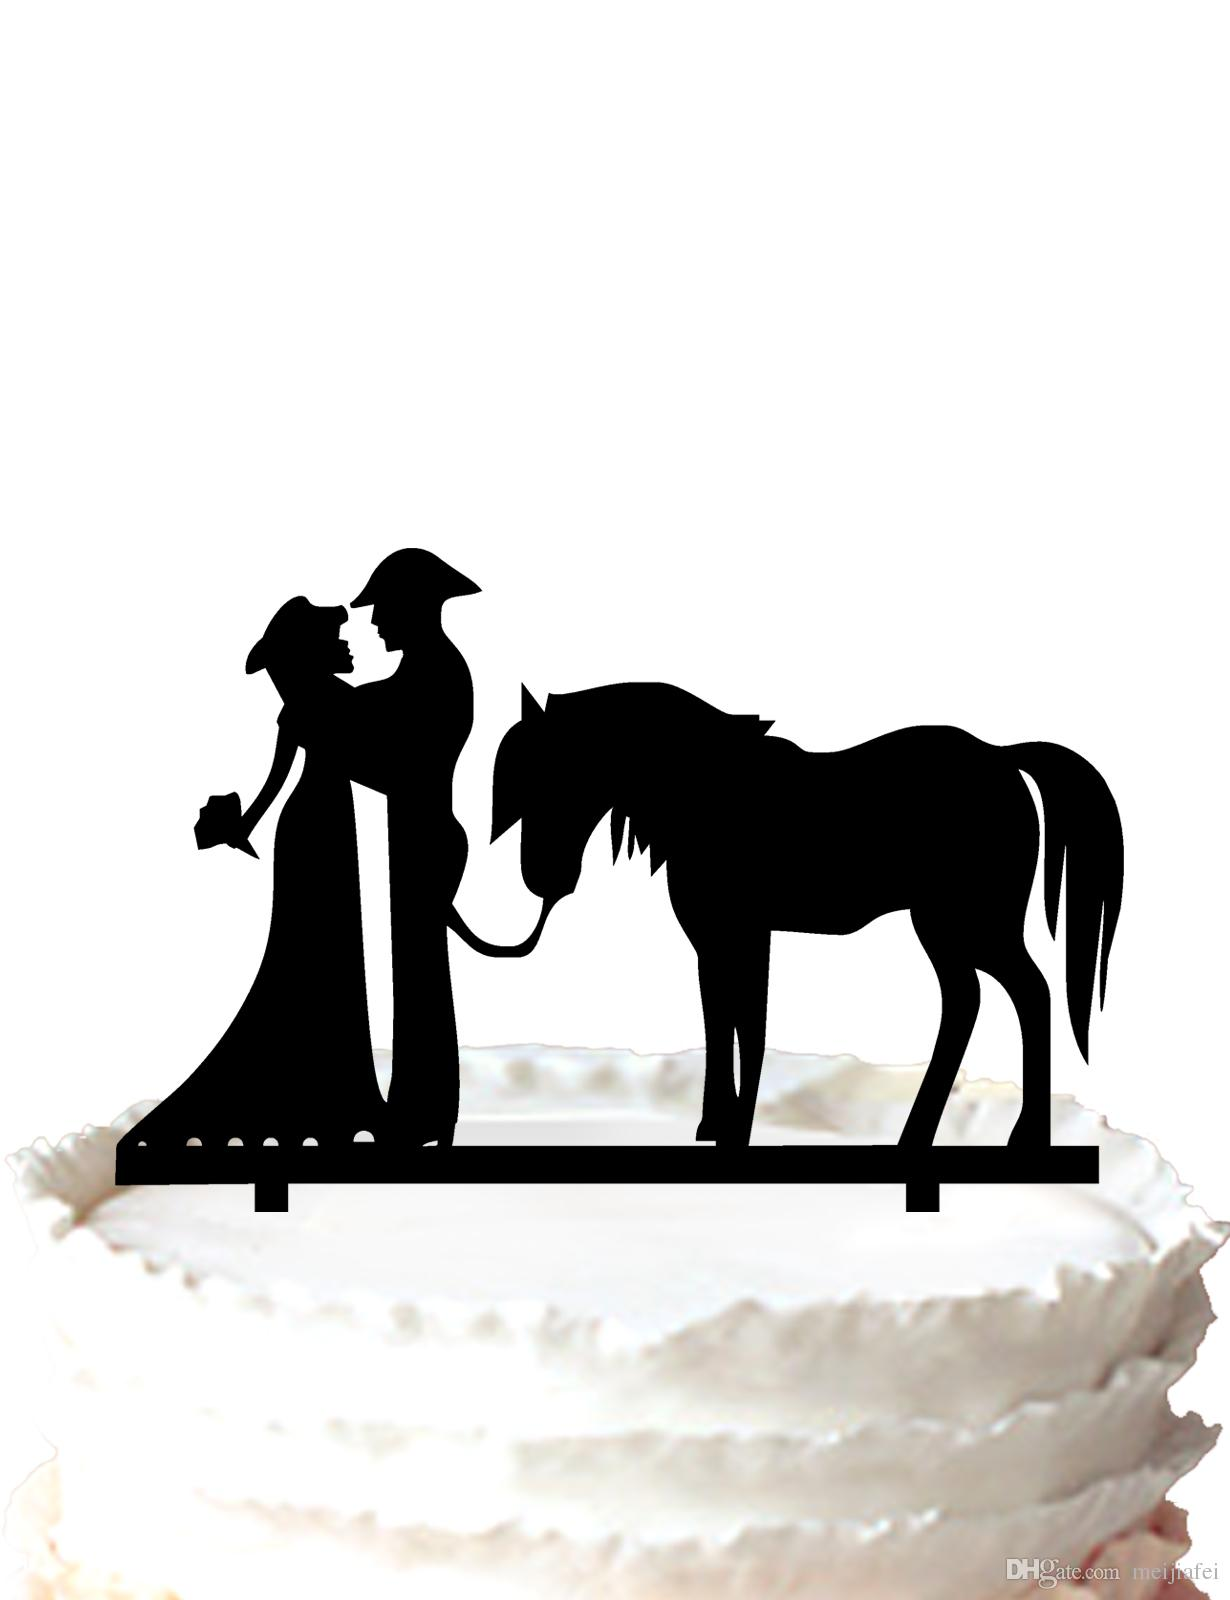 2020 Unique Wedding Cake Topper Silhouette Cake Topper Cowboy Bride And Groom Wedding Cake Topper With Horse For Option From Meijiafei 19 1 Dhgate Com